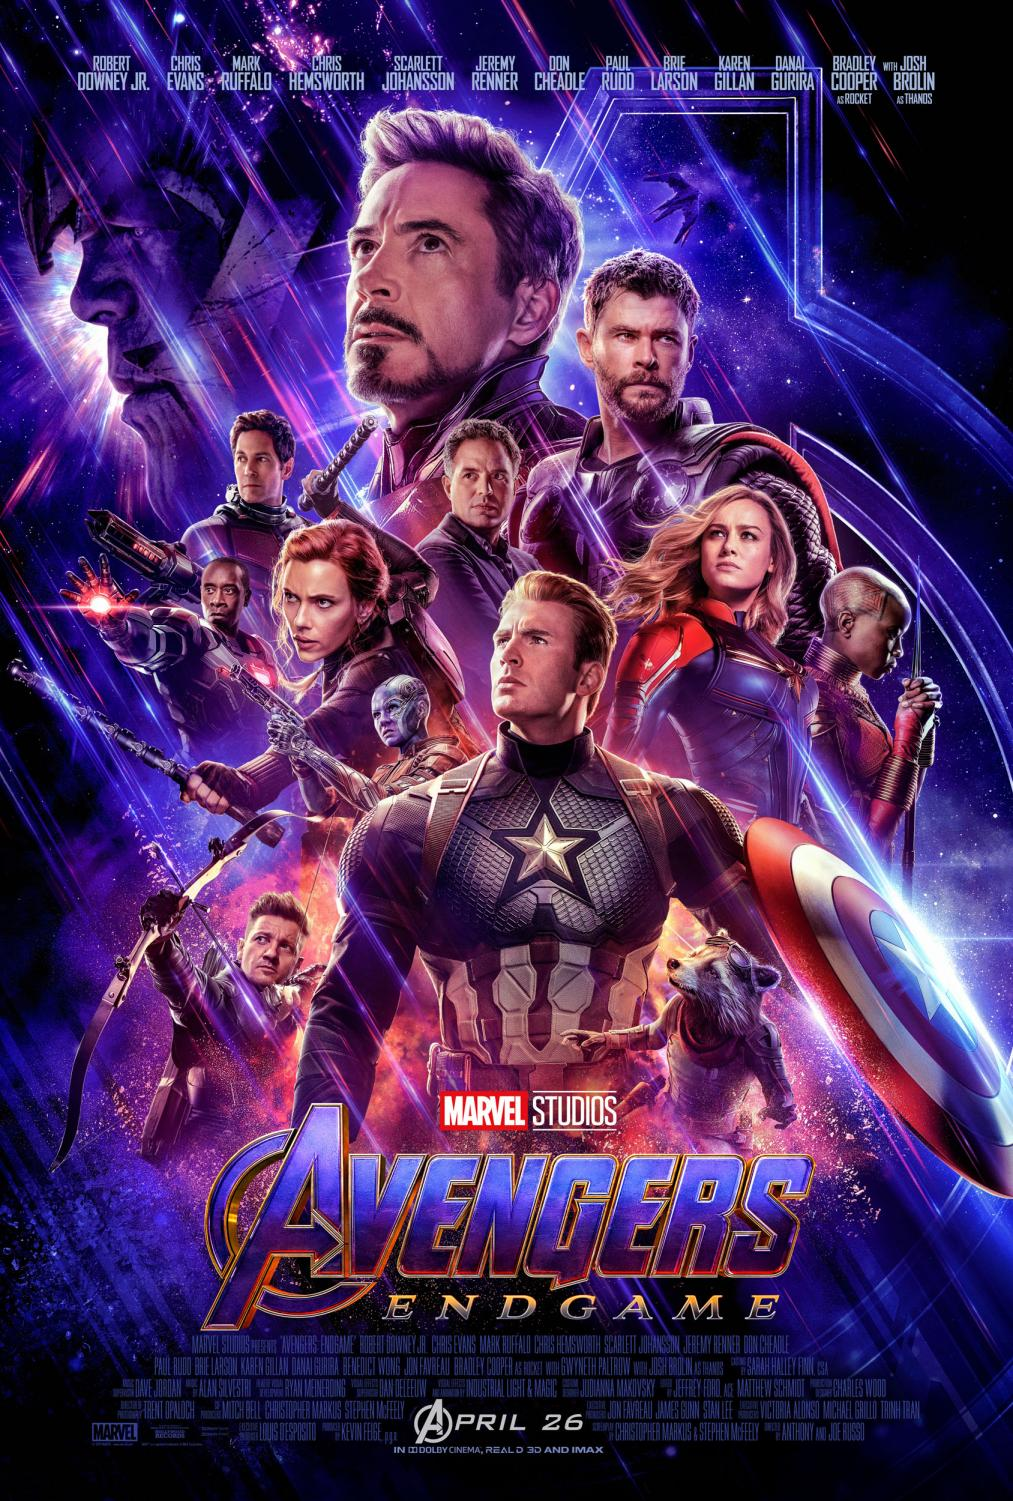 Avengers: Endgame is including everyone from the MCU here. In it's opening weekend, it has made the most money out of any other movie.